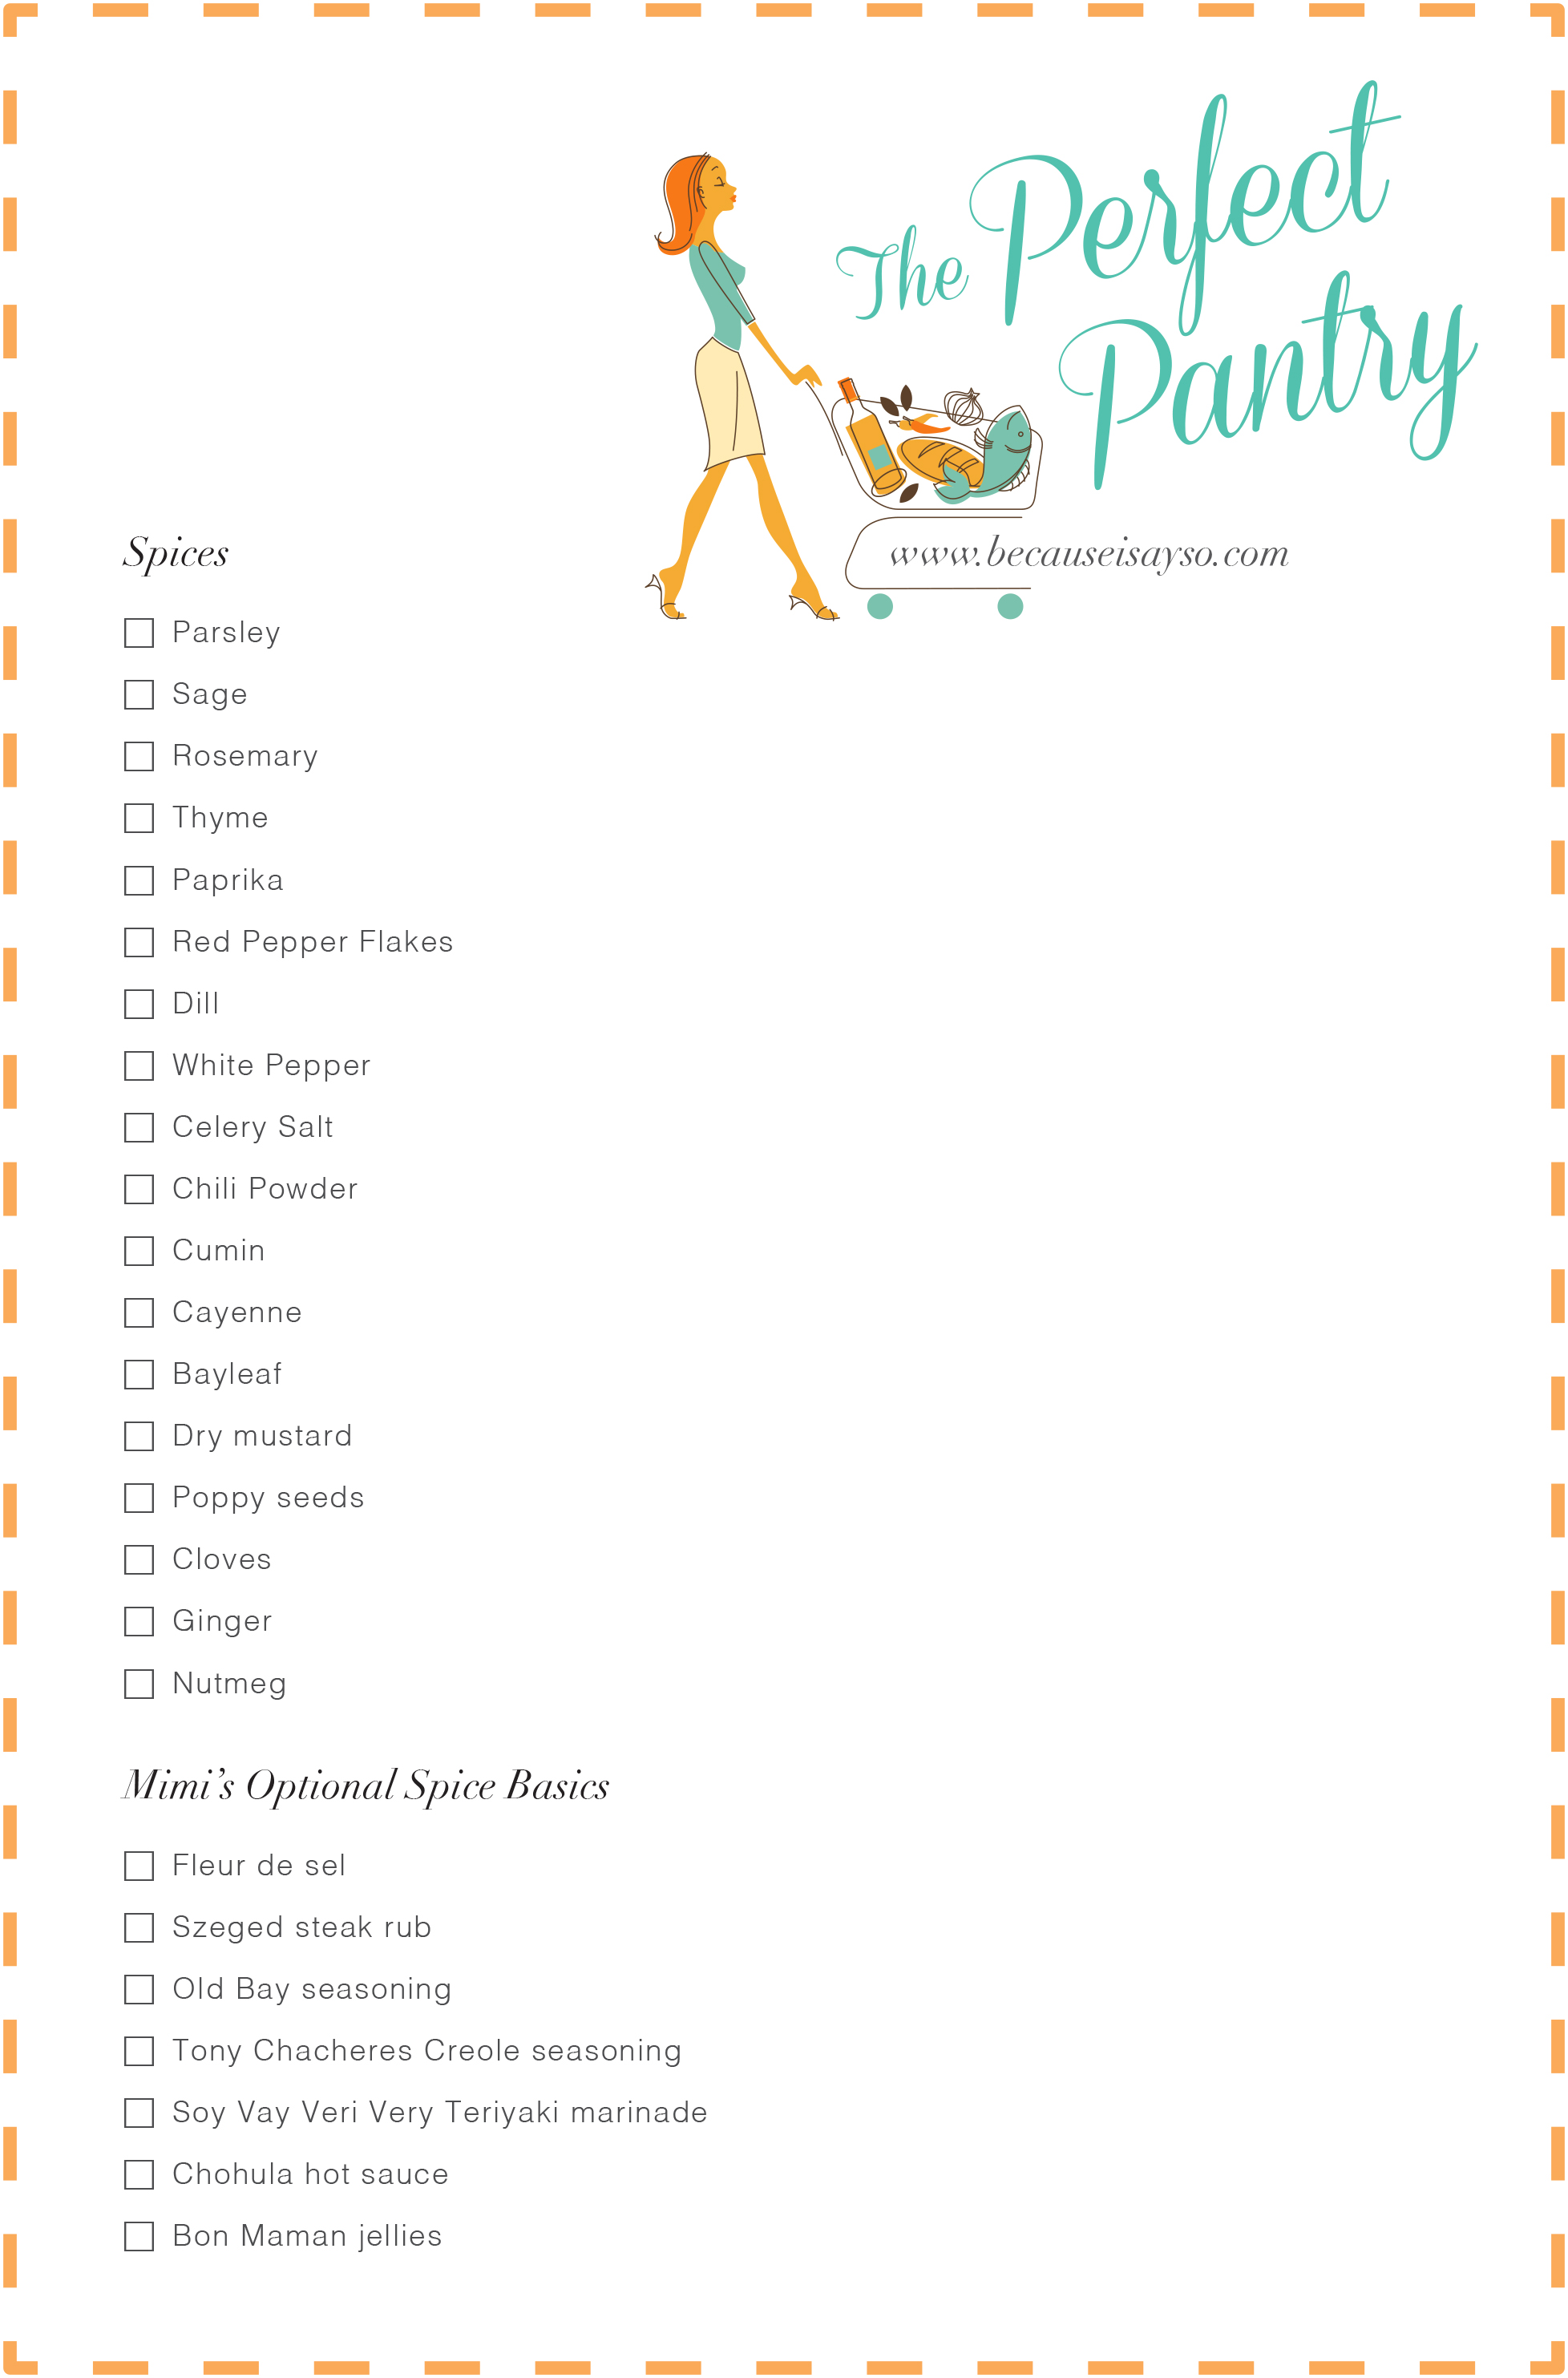 Perfect Pantry Shopping List Spices